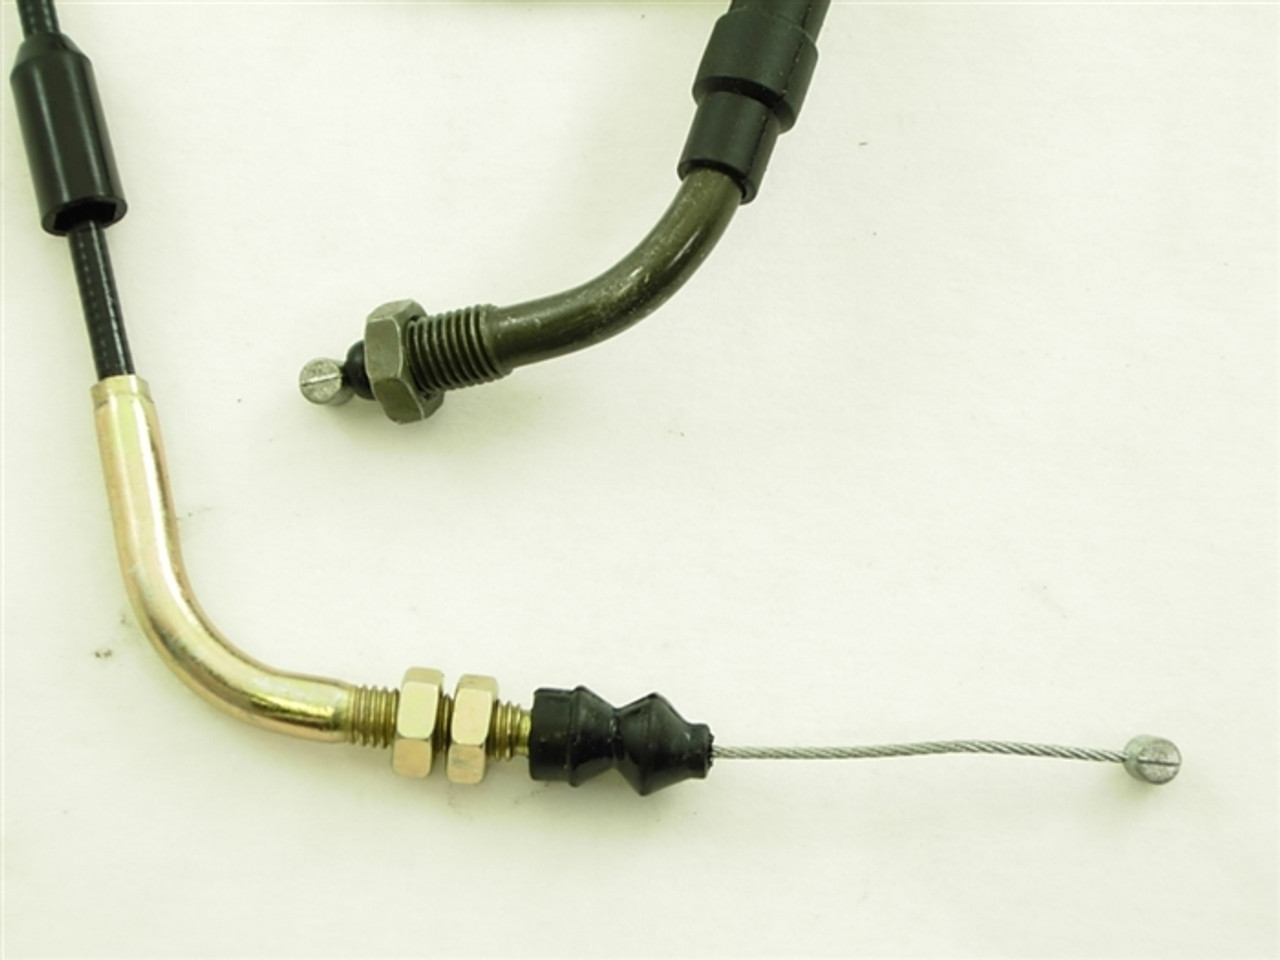 thottle cable 12009-a112-11